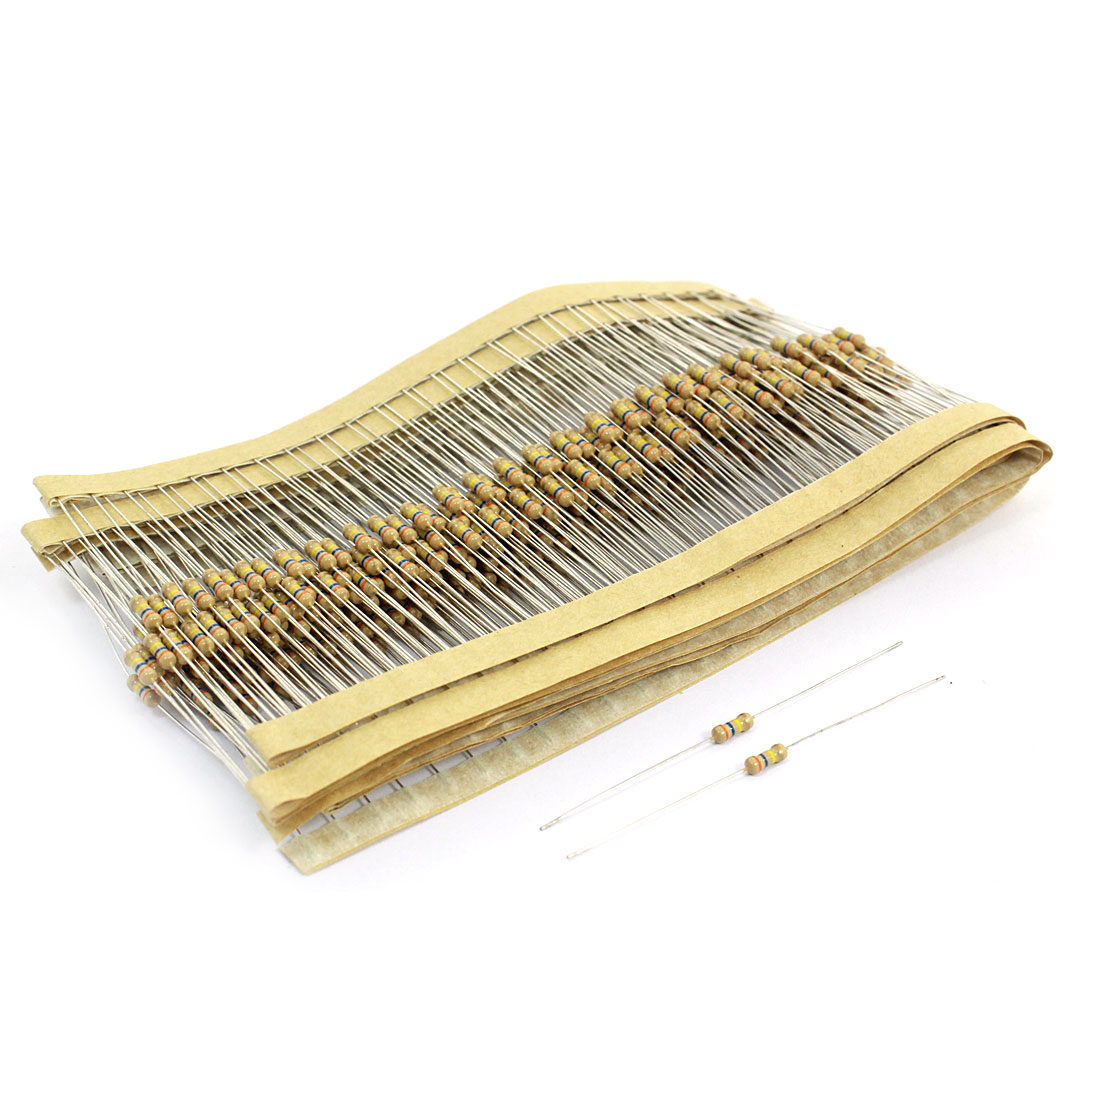 400 Pcs Axial Leads Fixed Carbon Film Resistors 1/4W 0.25 Watt 360K Ohm